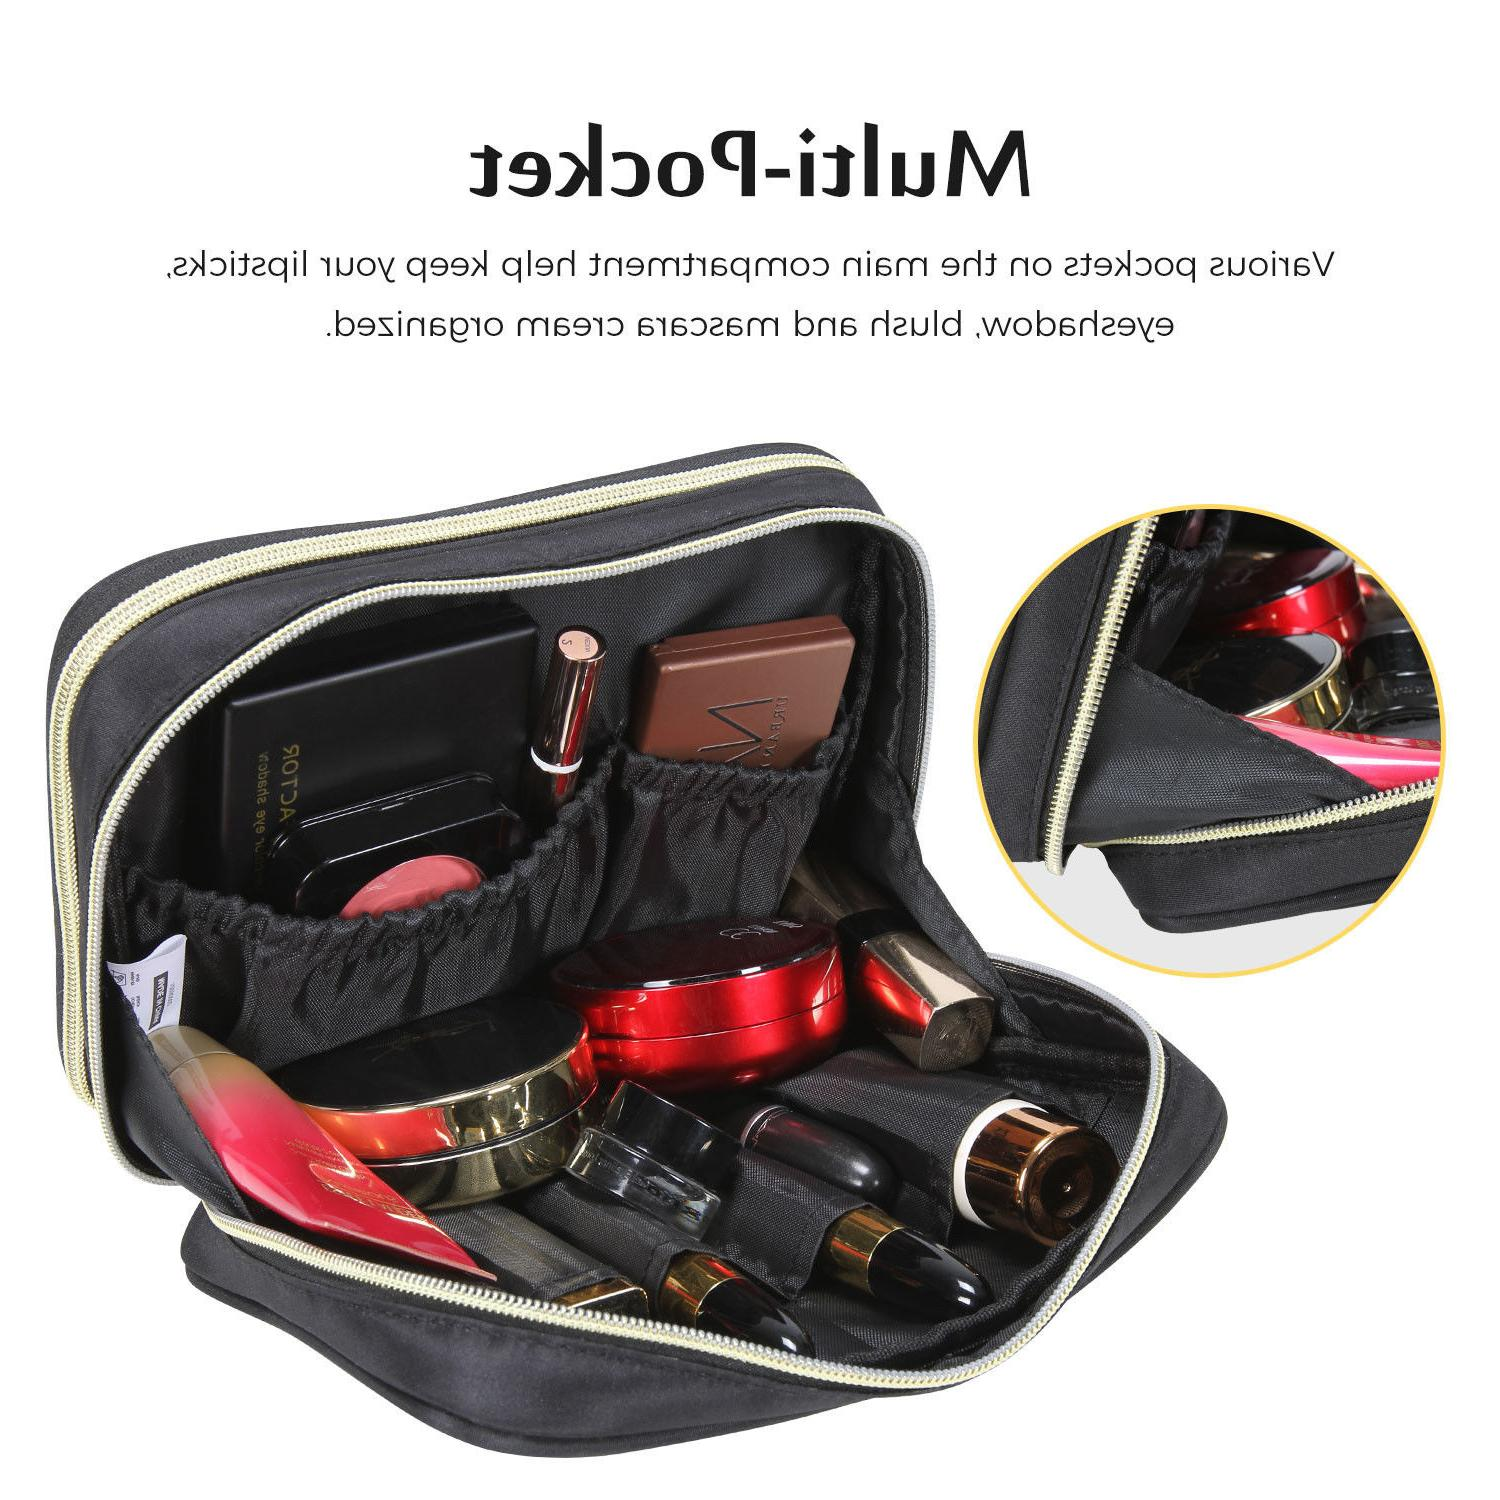 Lifewit Travel Cosmetic Organizer Holder Case